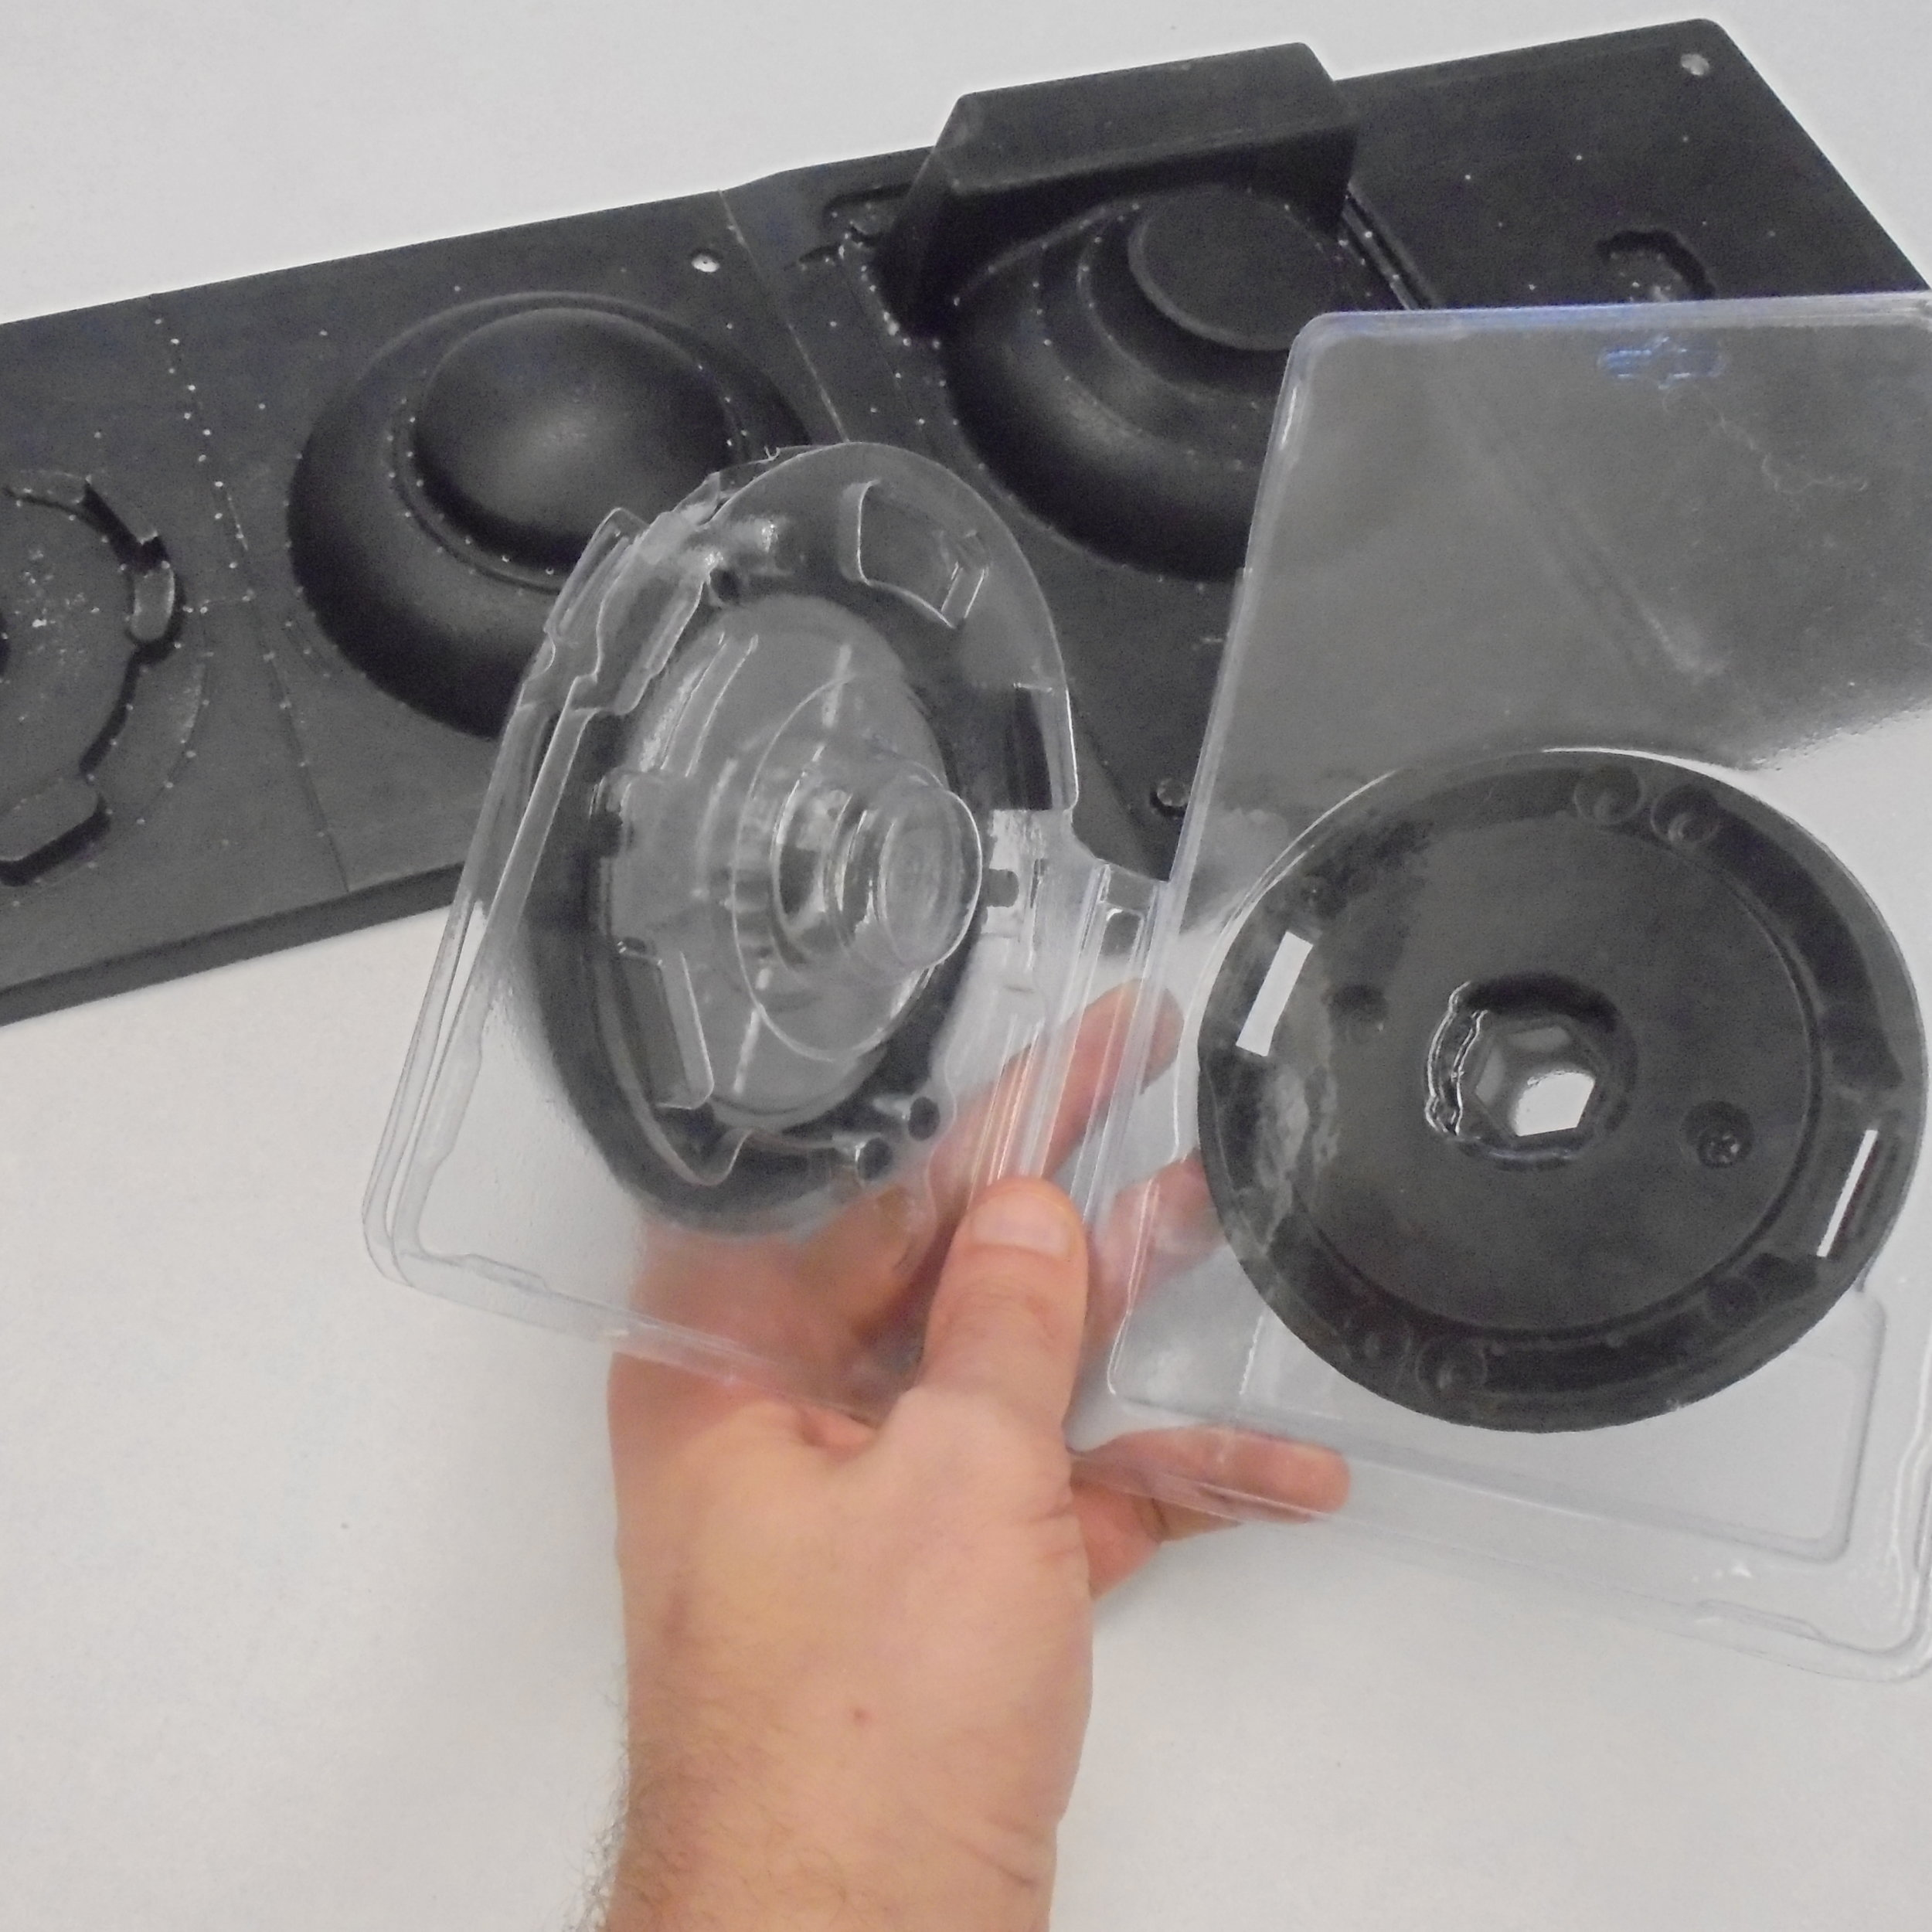 Clamshell packaging formed on tooling made in under 24 hours